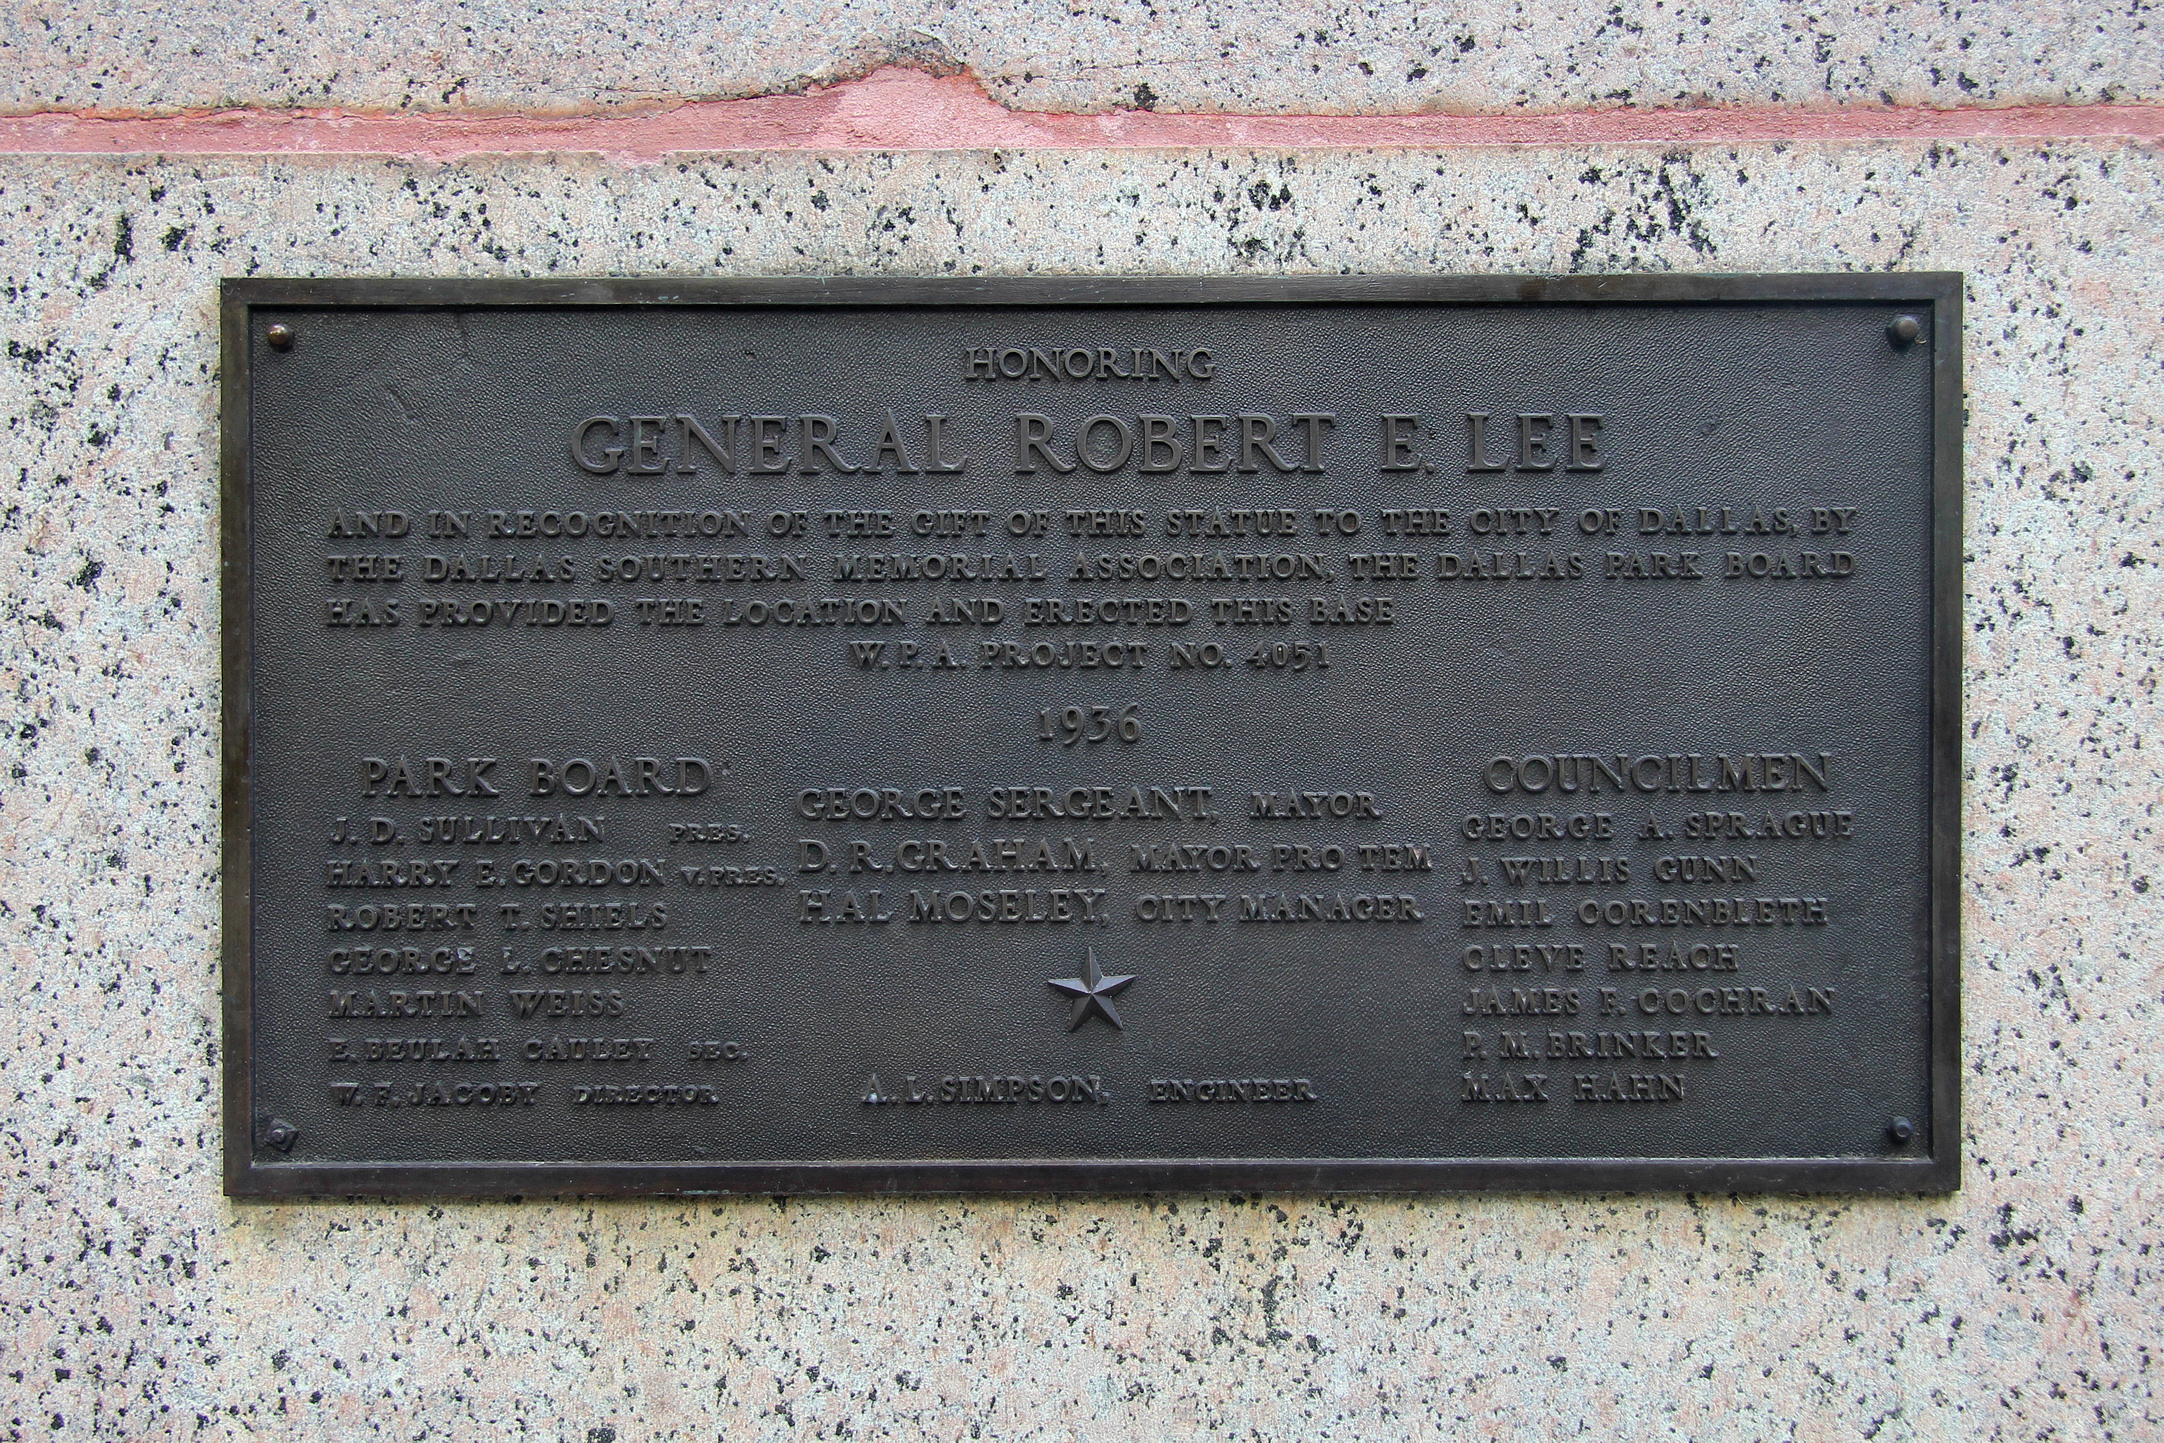 The dedication plaque on the statue's base.